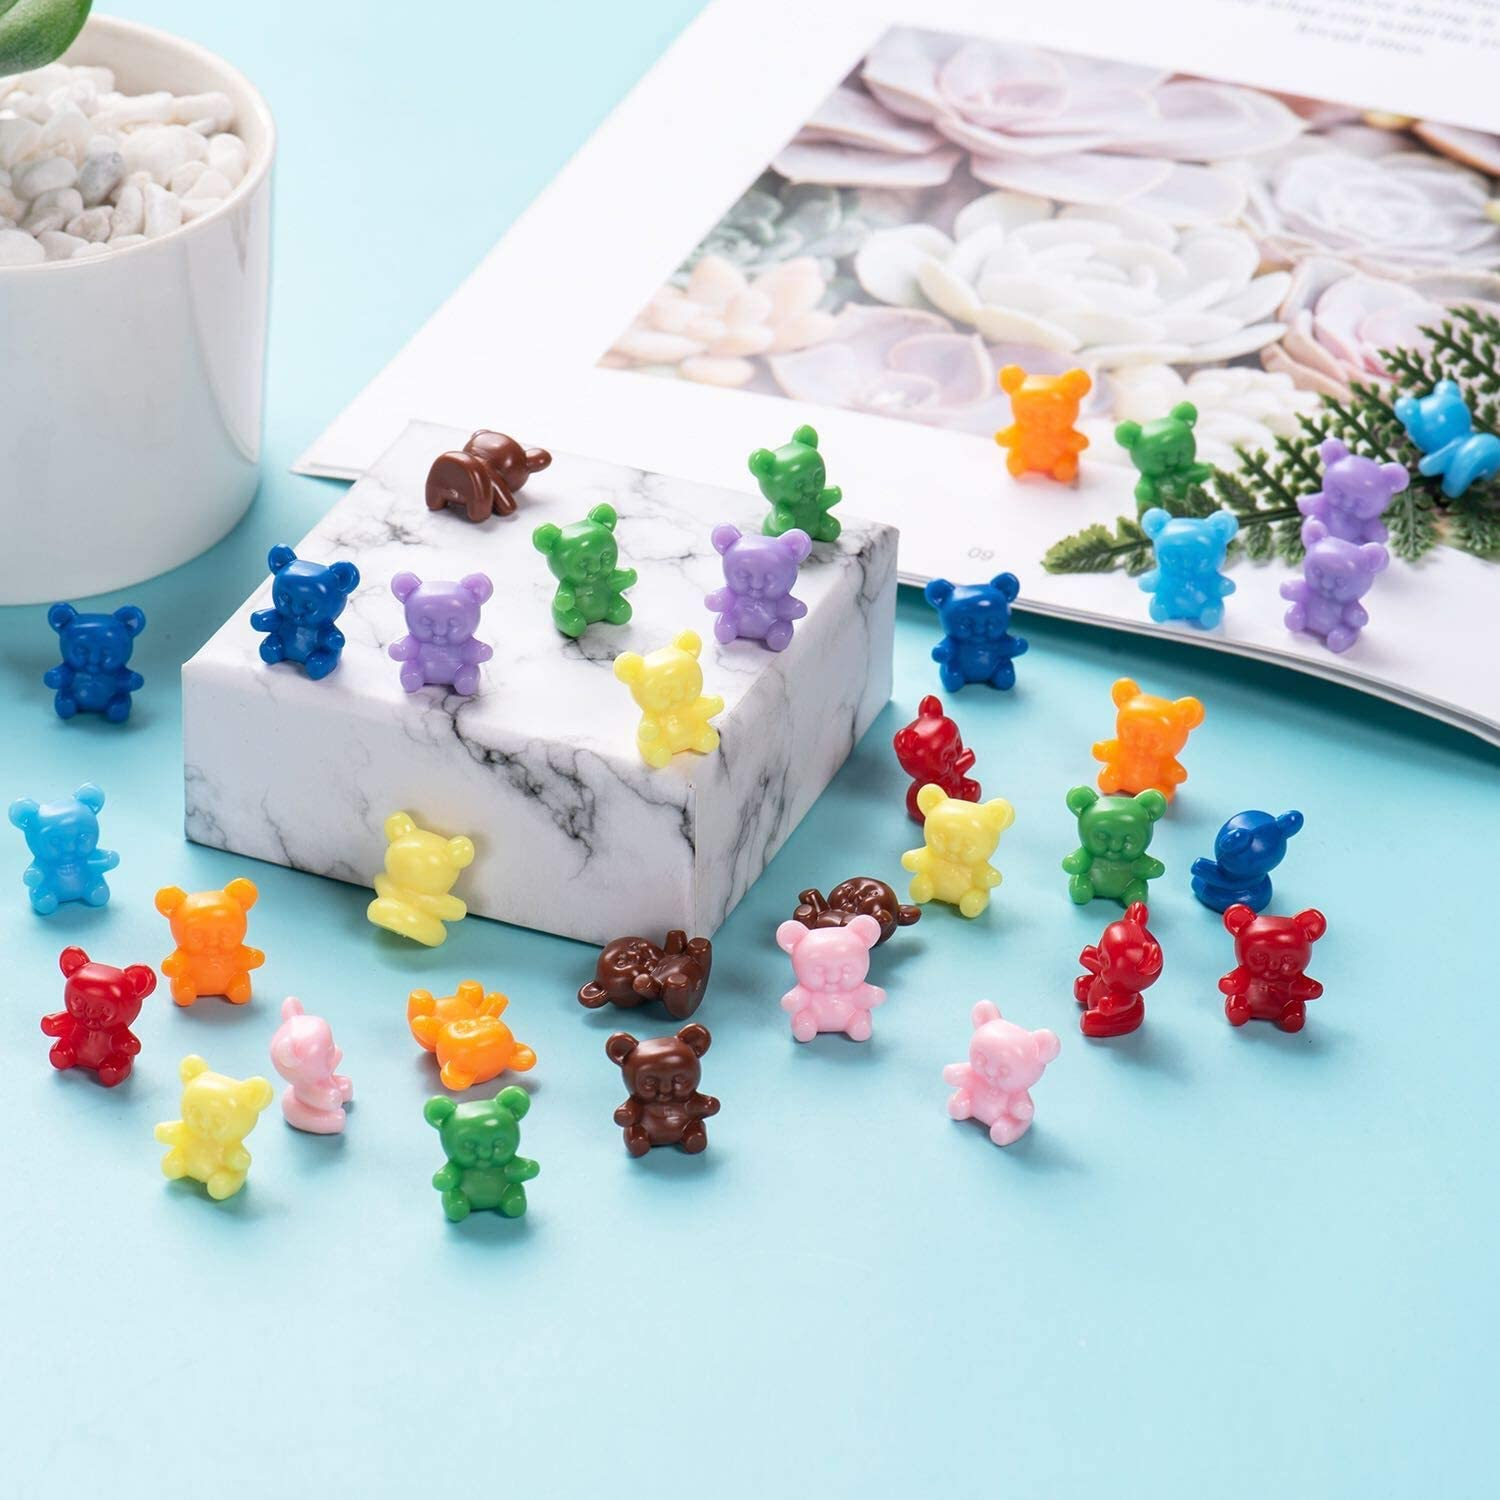 100PC Counting Bears Math Manipulatives Learning Resources Bears for Baby Shower Games Party Favors